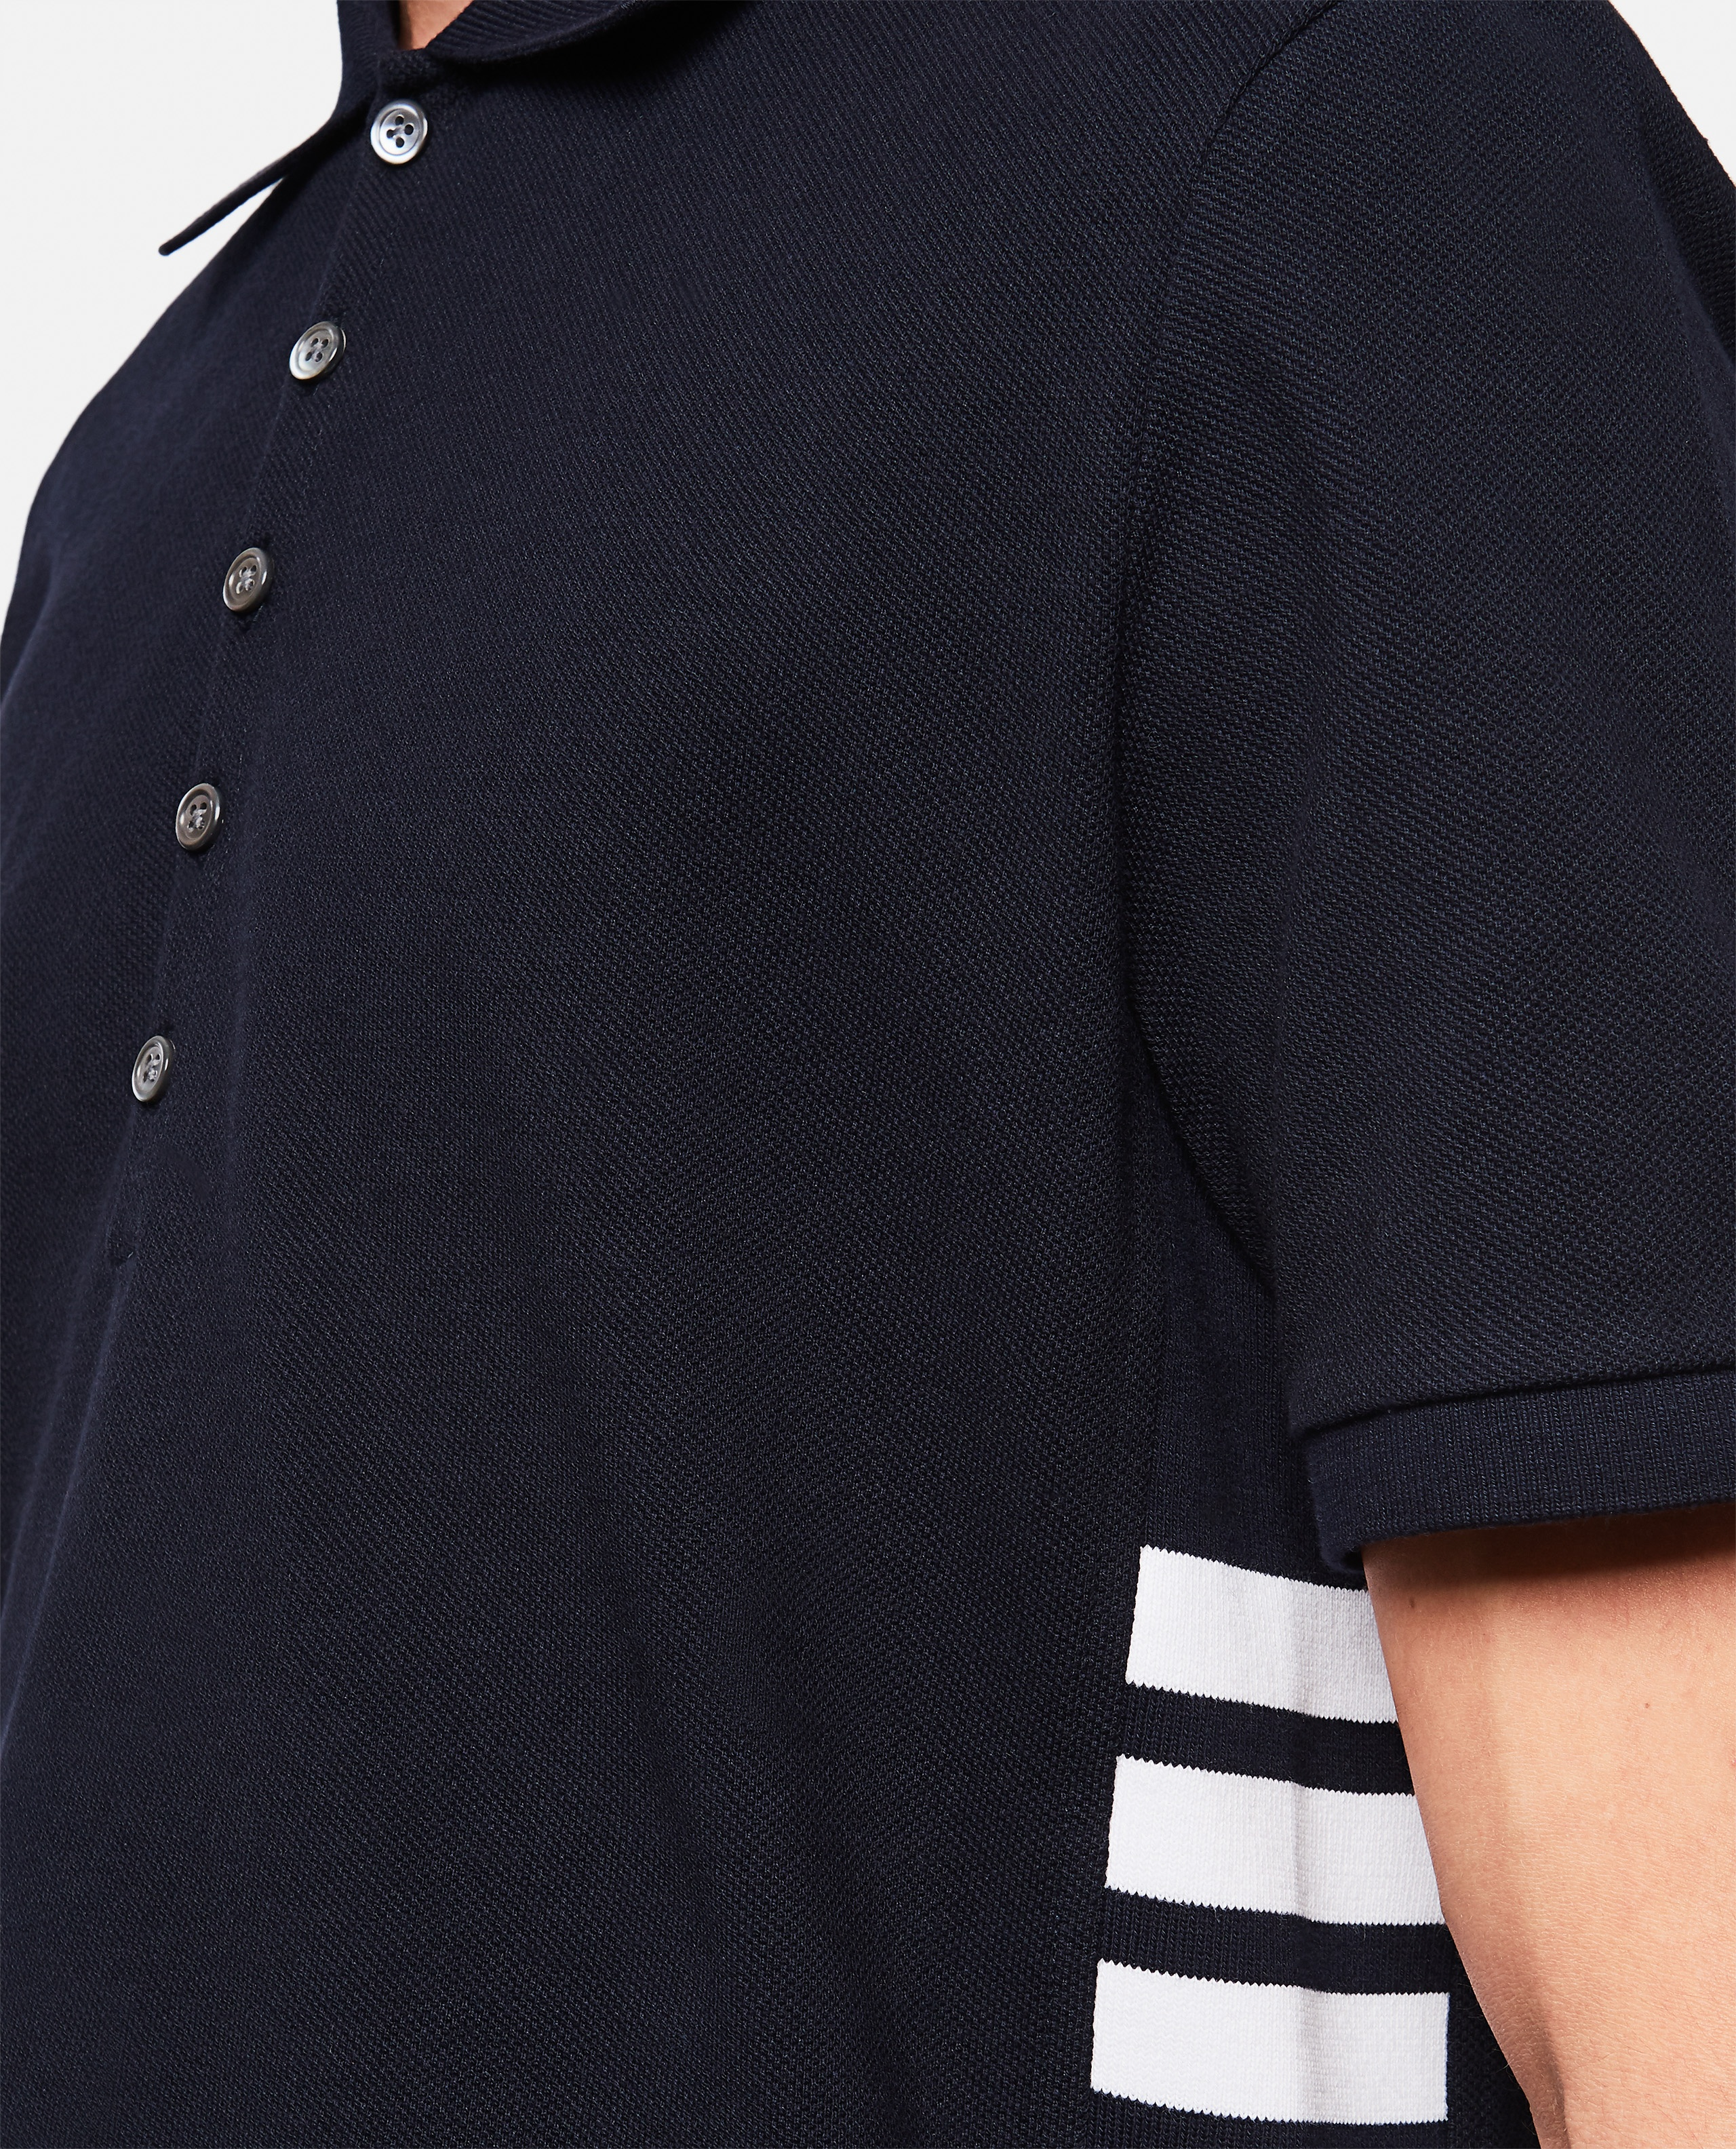 Thom Browne 4-Bar polo shirt  Men Thom Browne 000253530037449 4